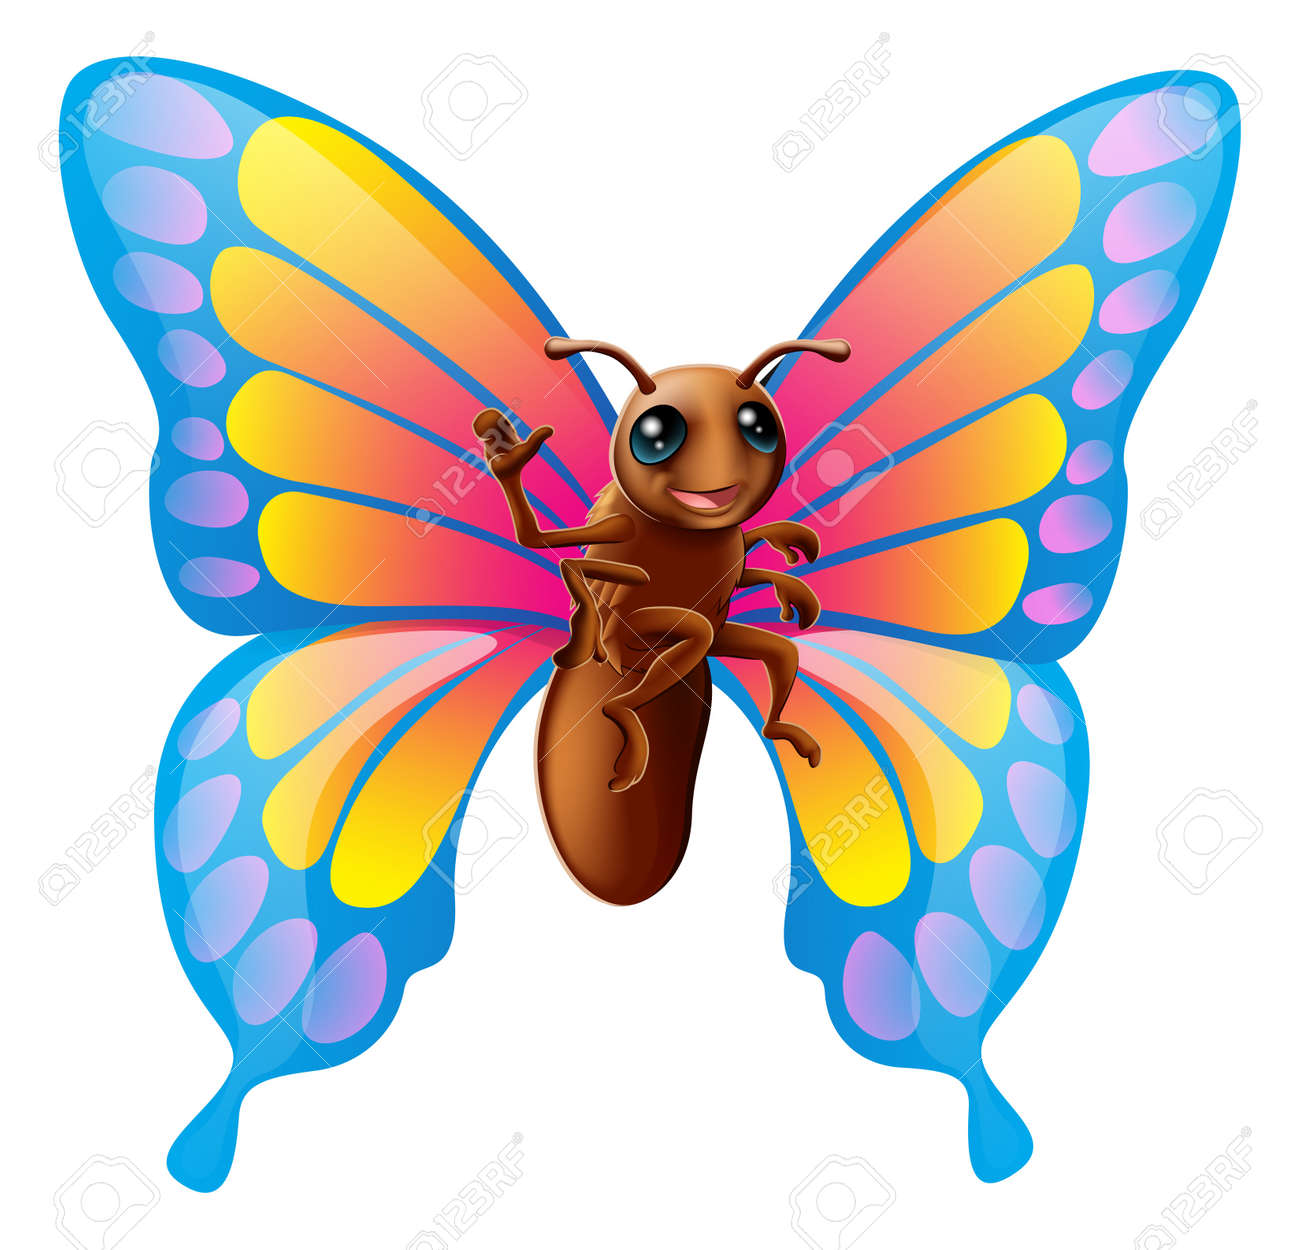 Illustration of a happy cute cartoon butterfly mascot waving Stock Vector - 16875301